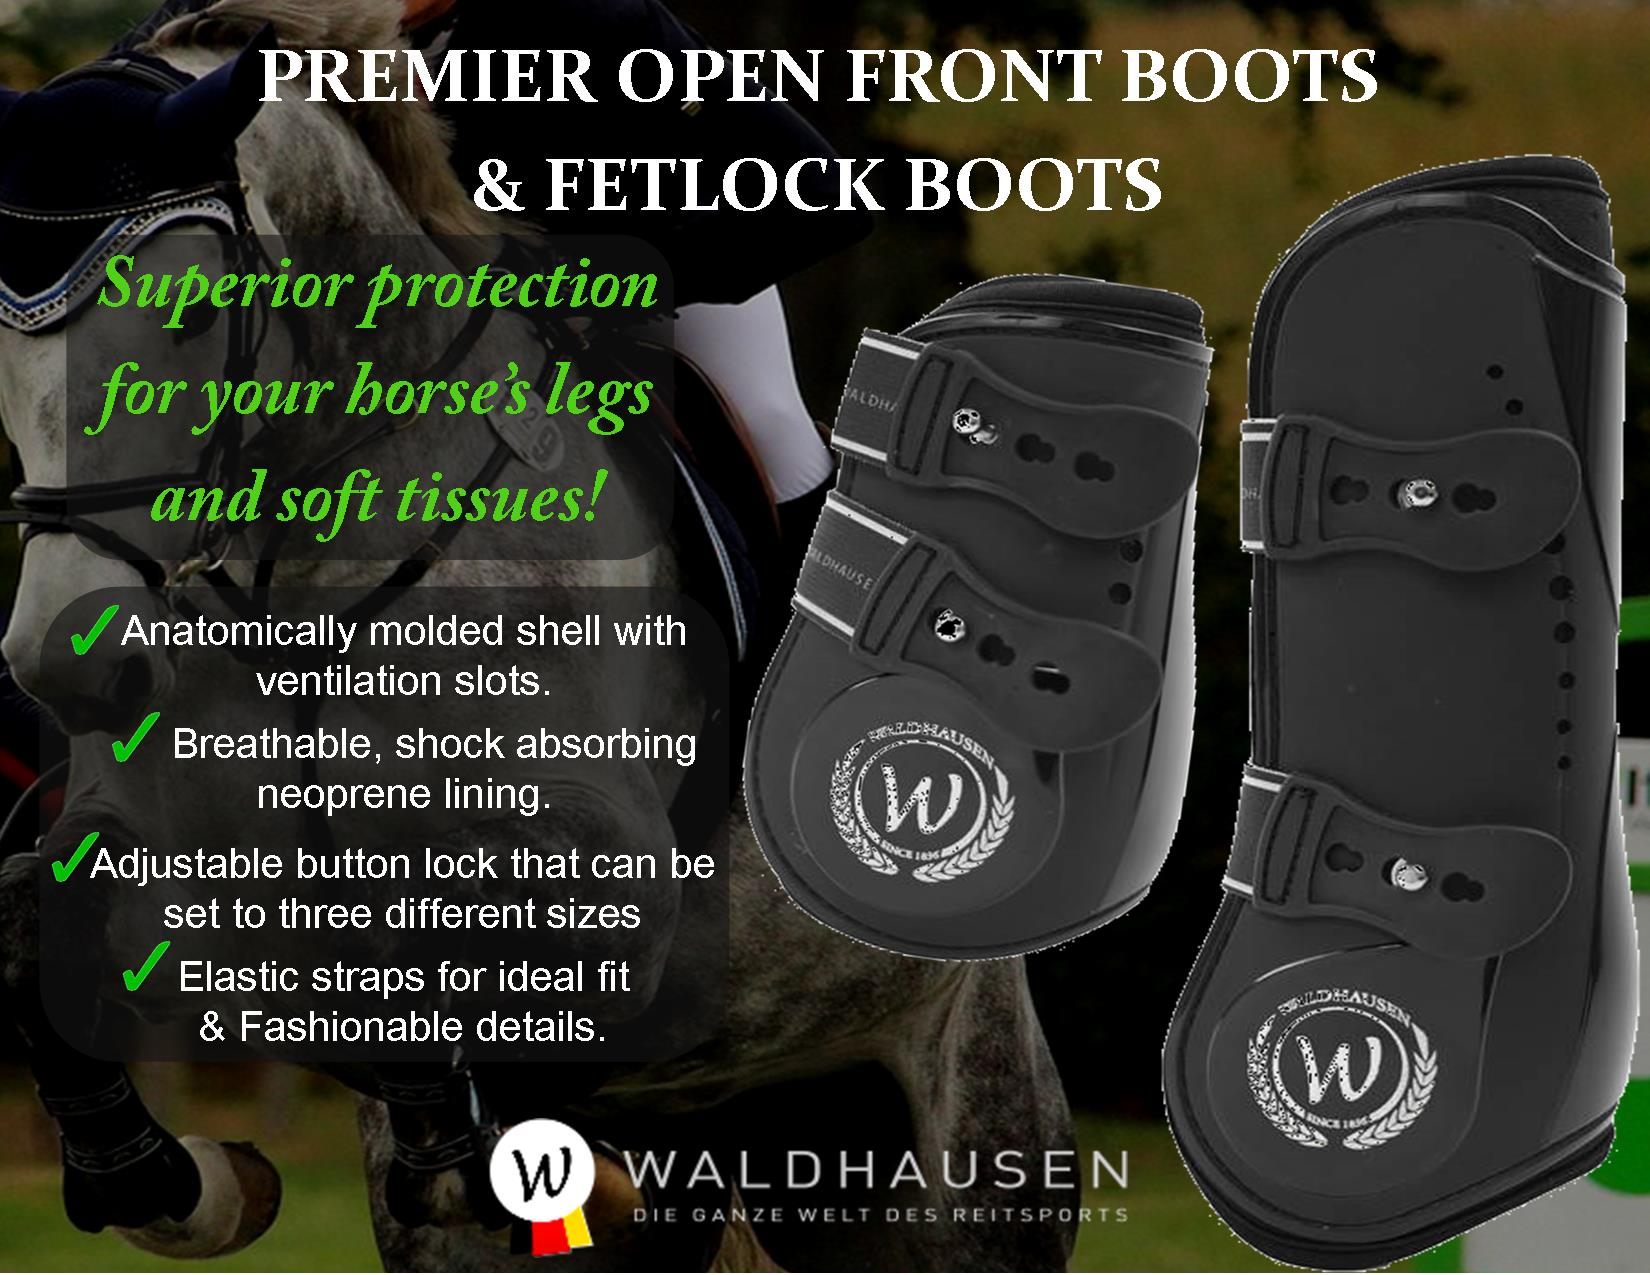 Waldhausen boots banner 7 Sporthorse Saddlery stockists and suppliers of Waldhausen productsjpg